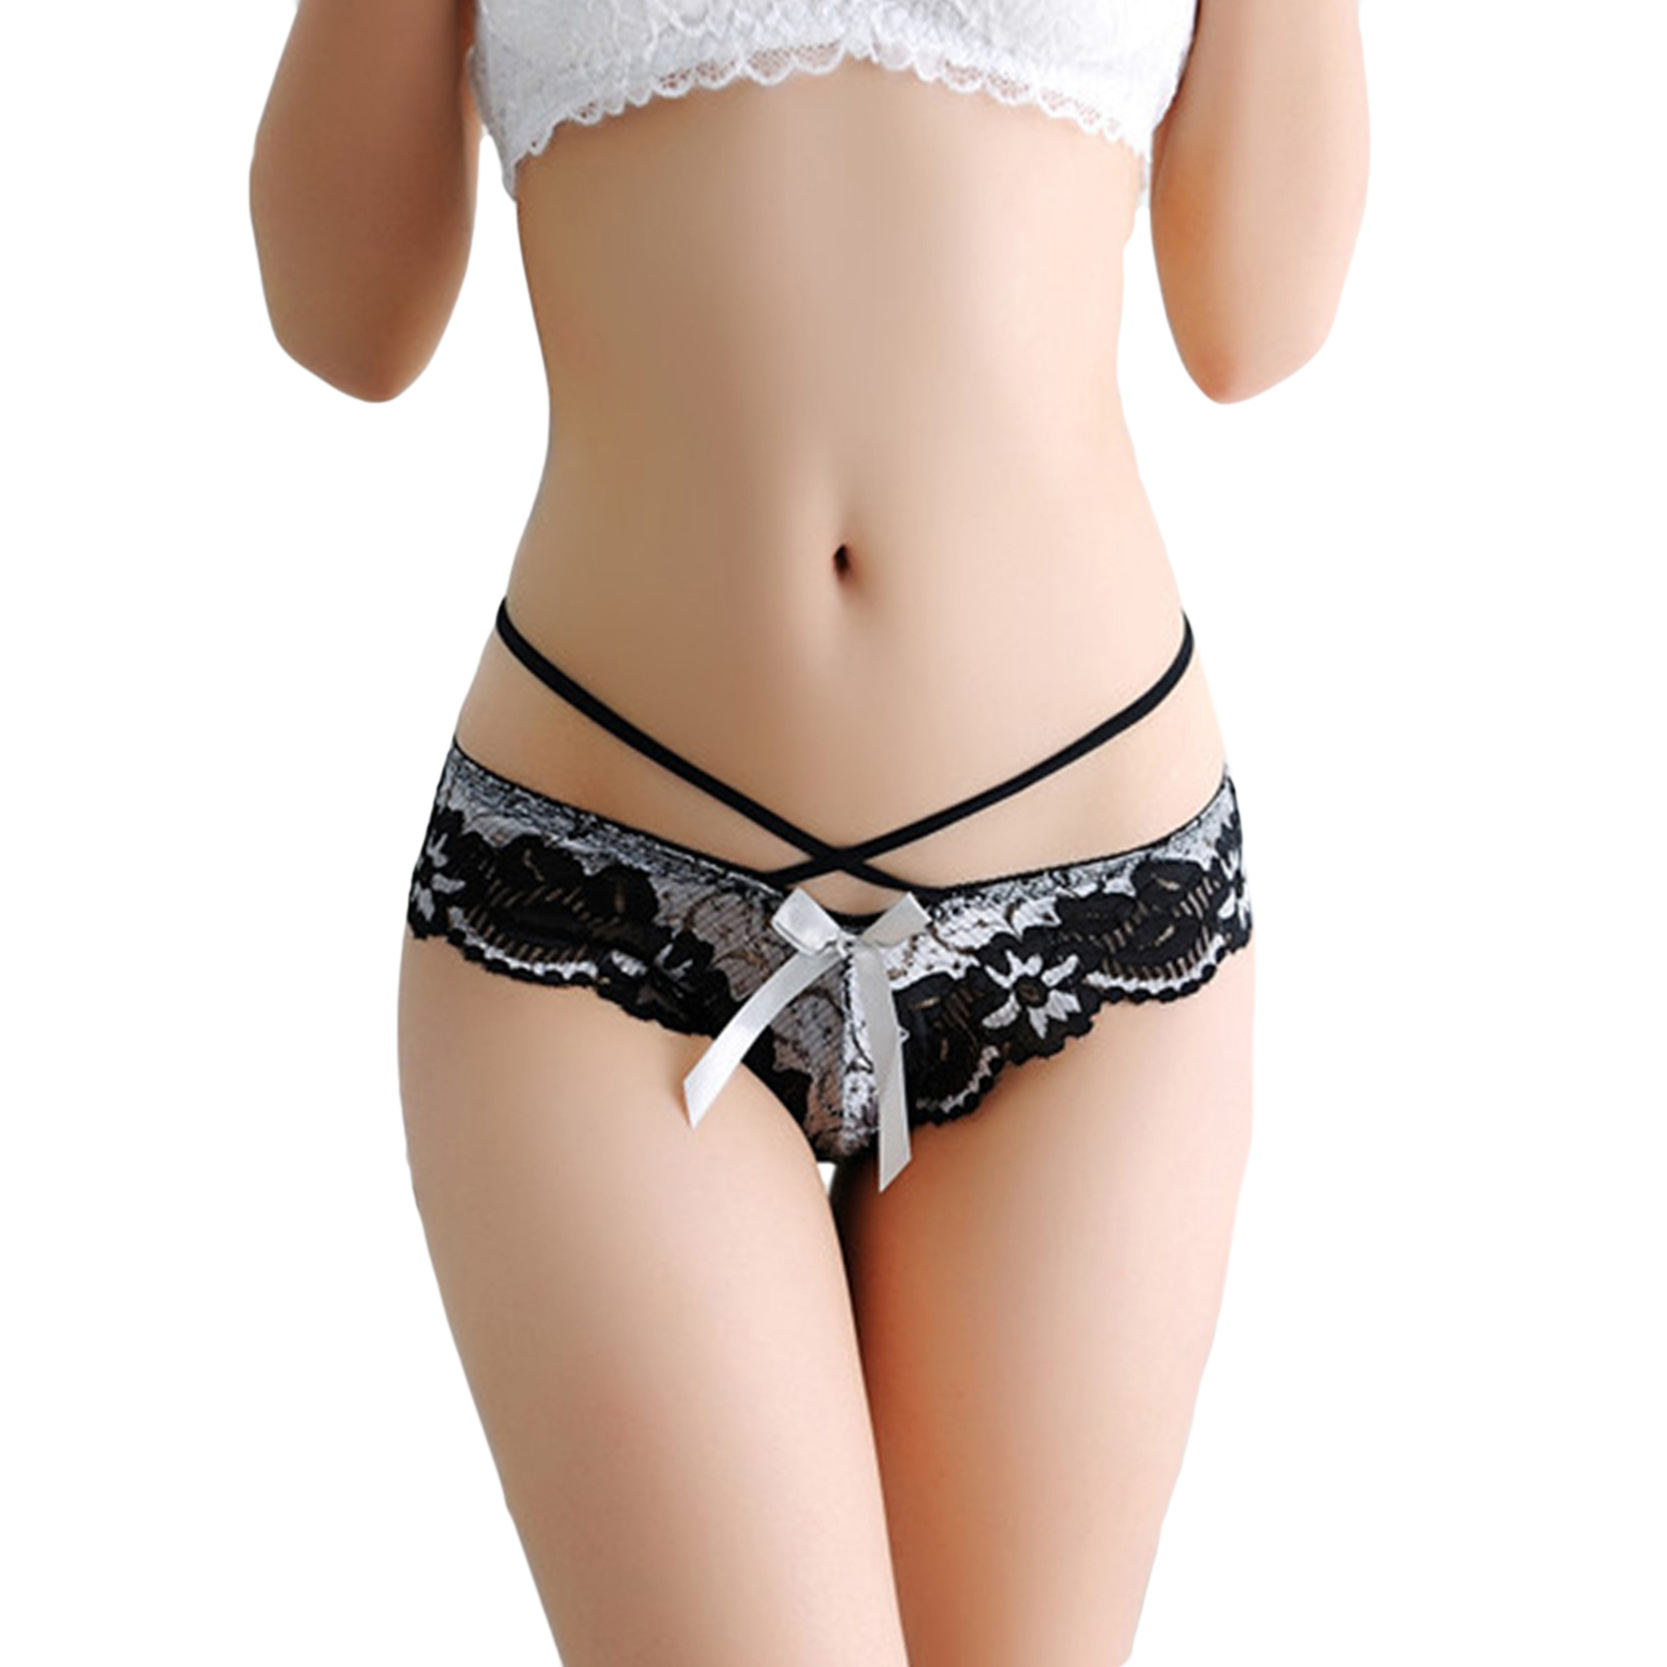 Lace underwear women: TargetExpect More. Pay Less. · Free Returns · Everyday Savings · Free Shipping $35+.